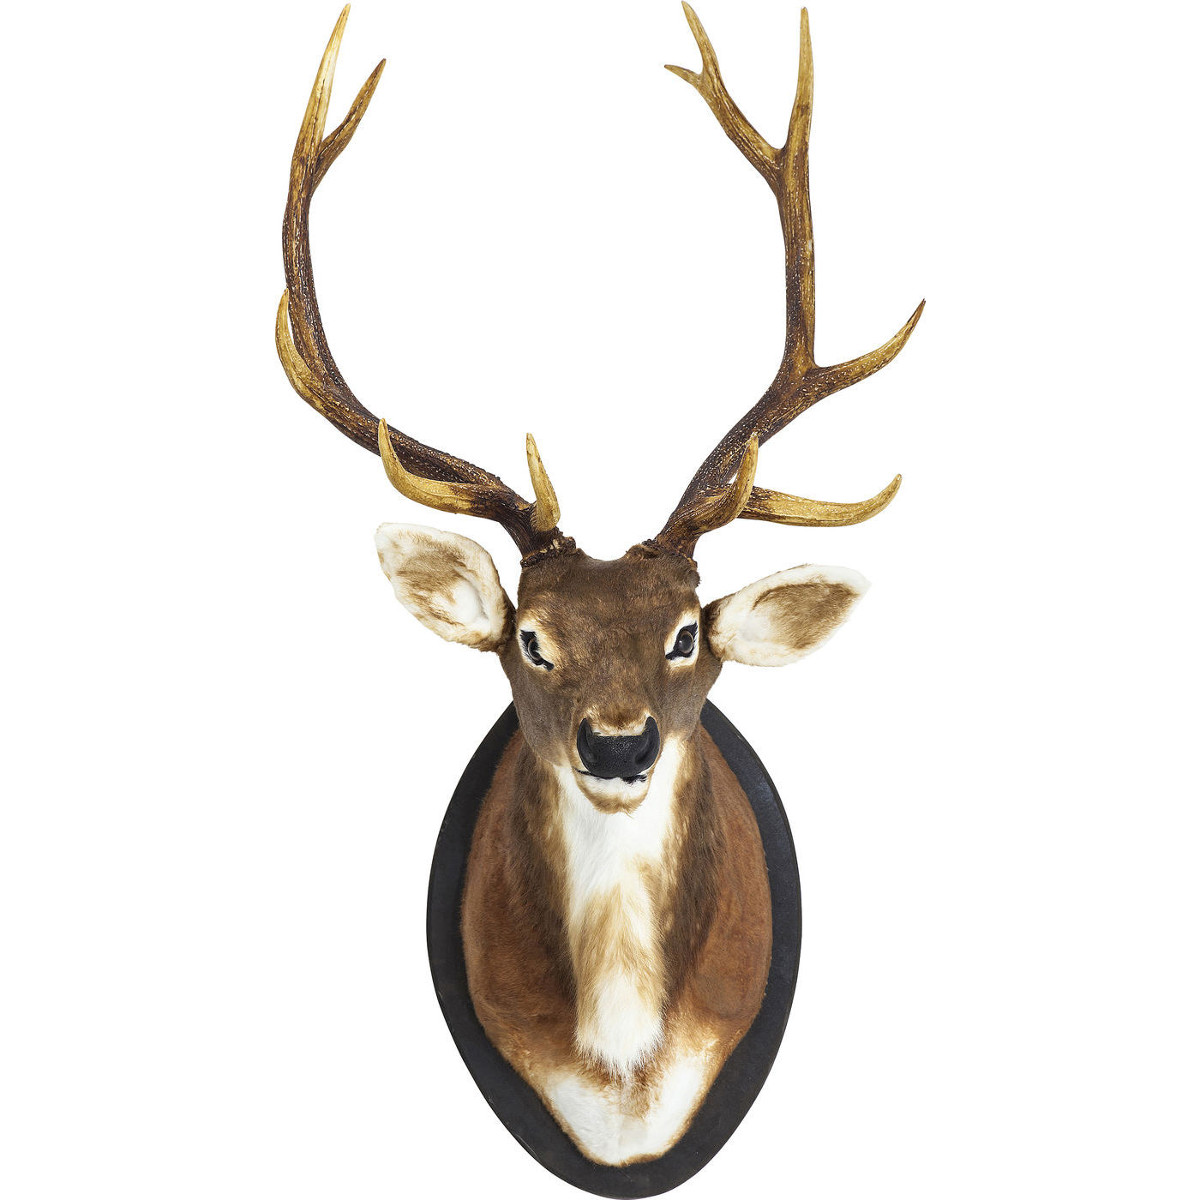 Deer Antler Wall Decoration